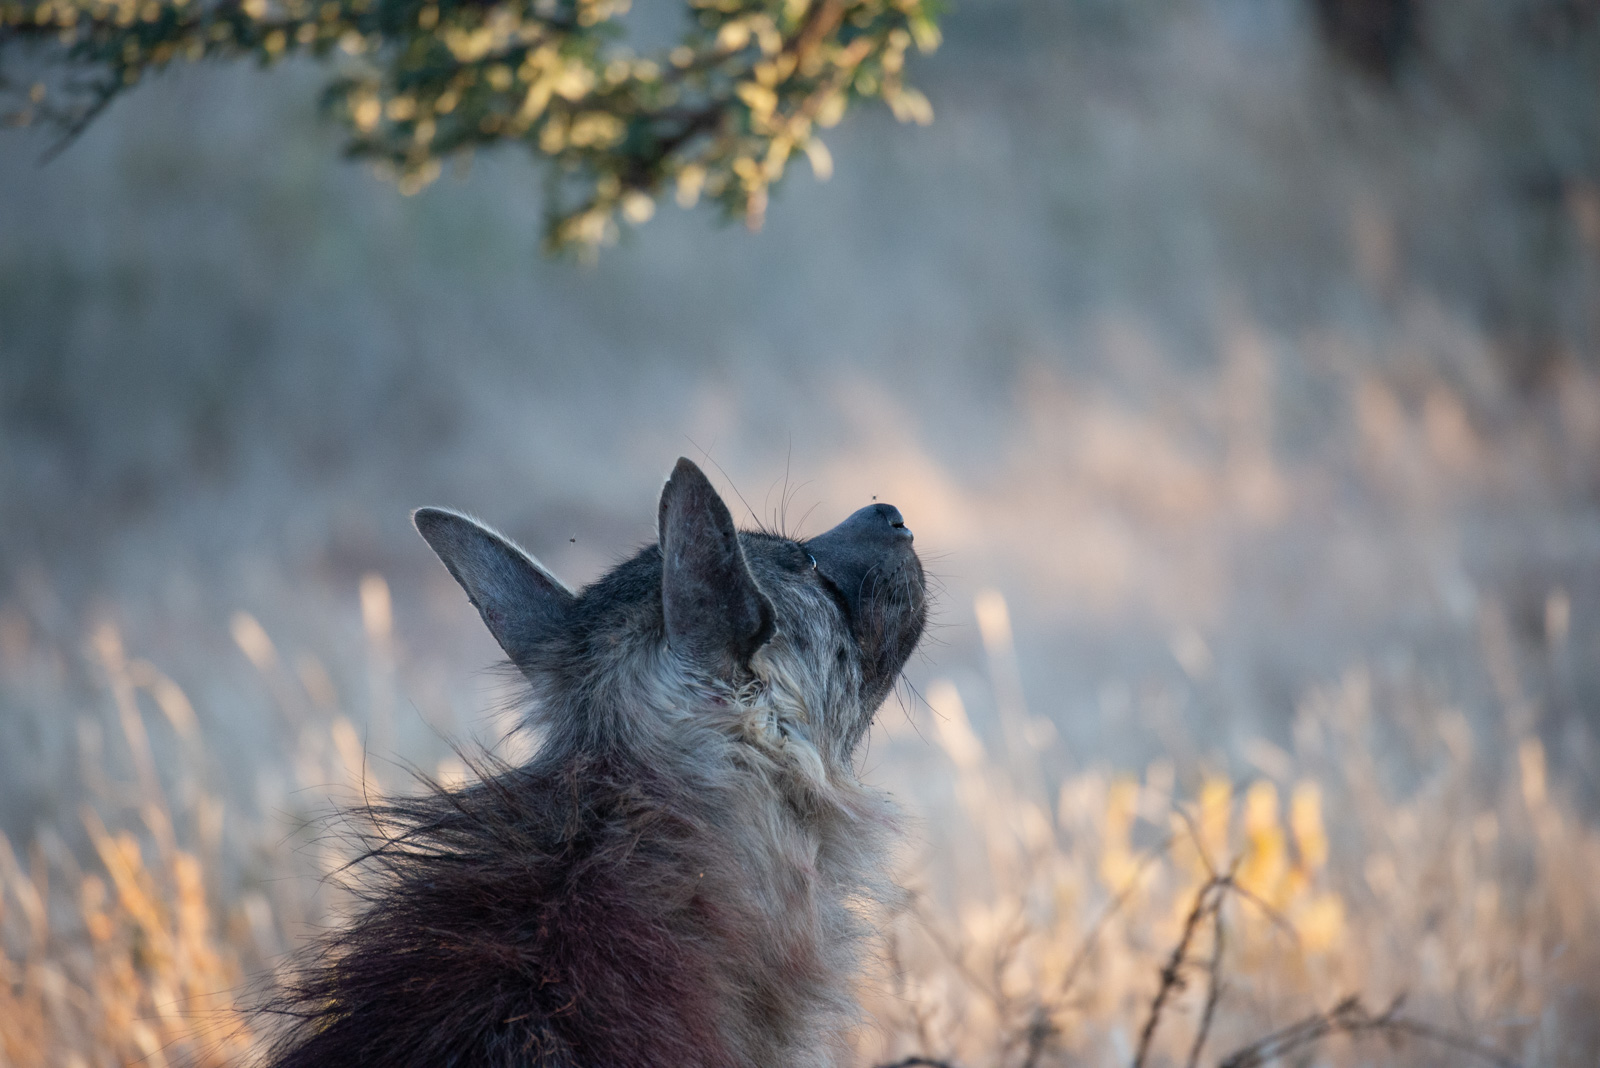 Namibia_okonjima brown hyena staring at tree-0121060.jpg